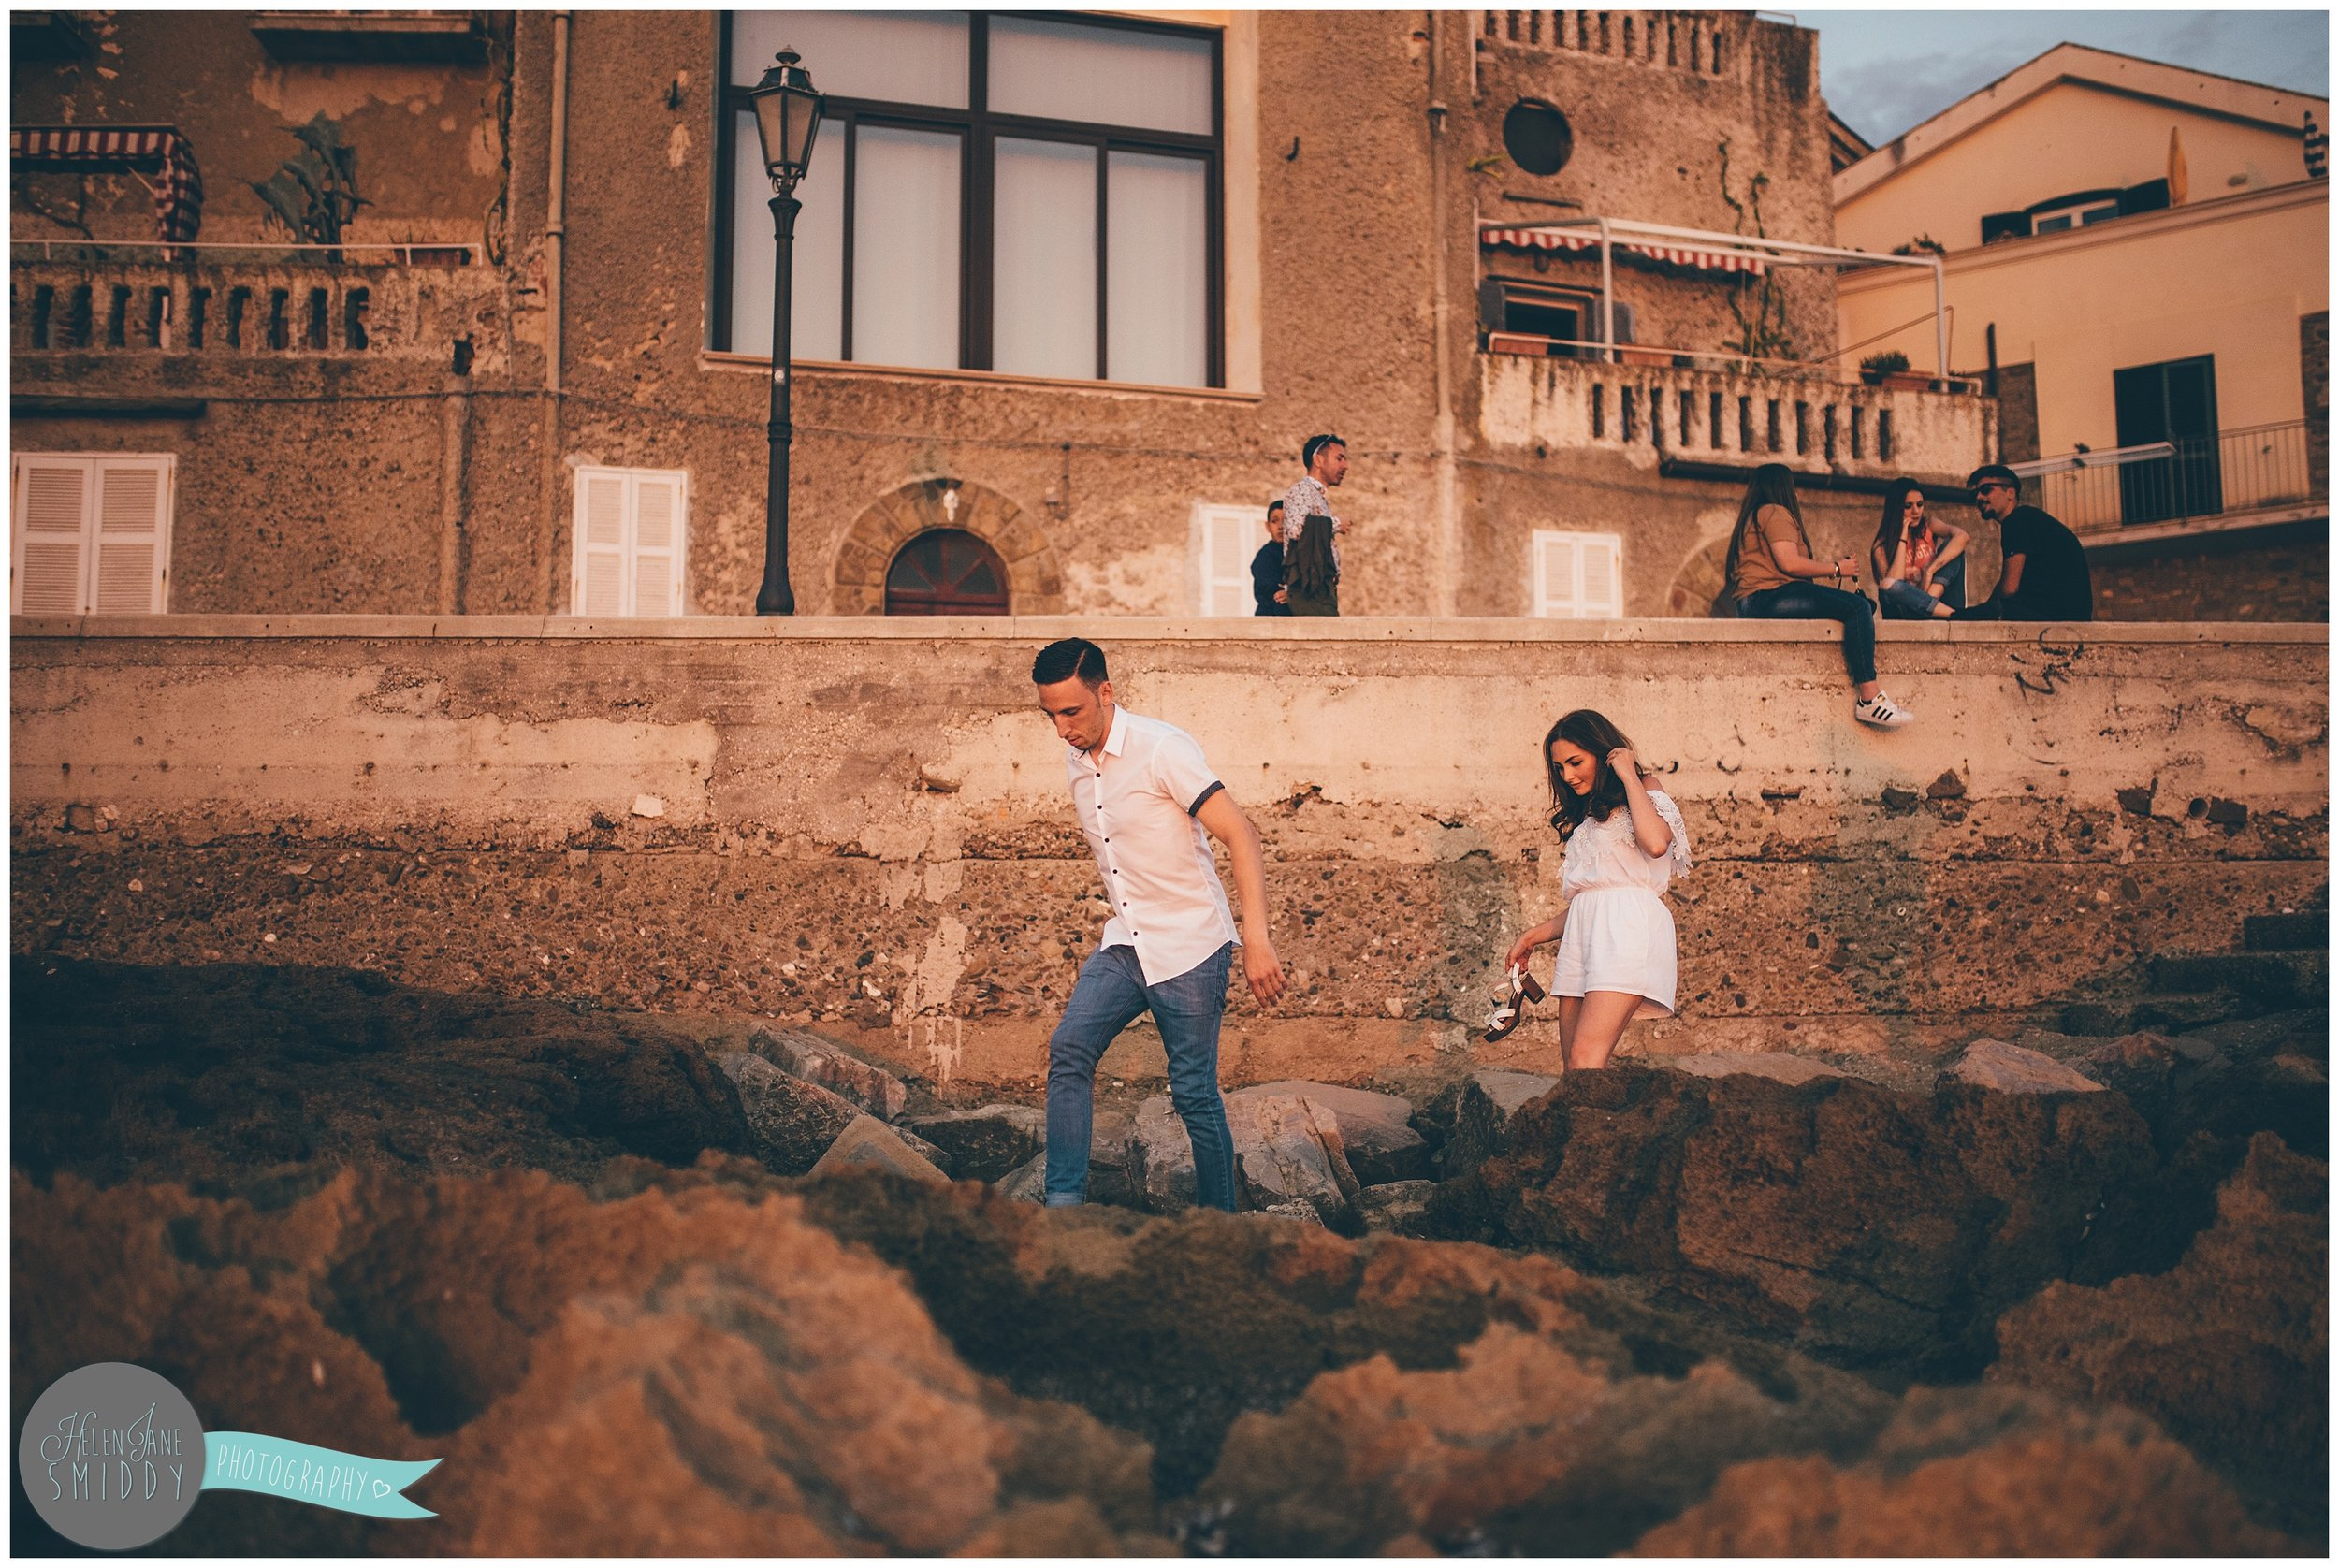 The young couple make their way through the rocks on the beach during their Engagement photoshoot in Santa Maria Di Castellabate, Italy.